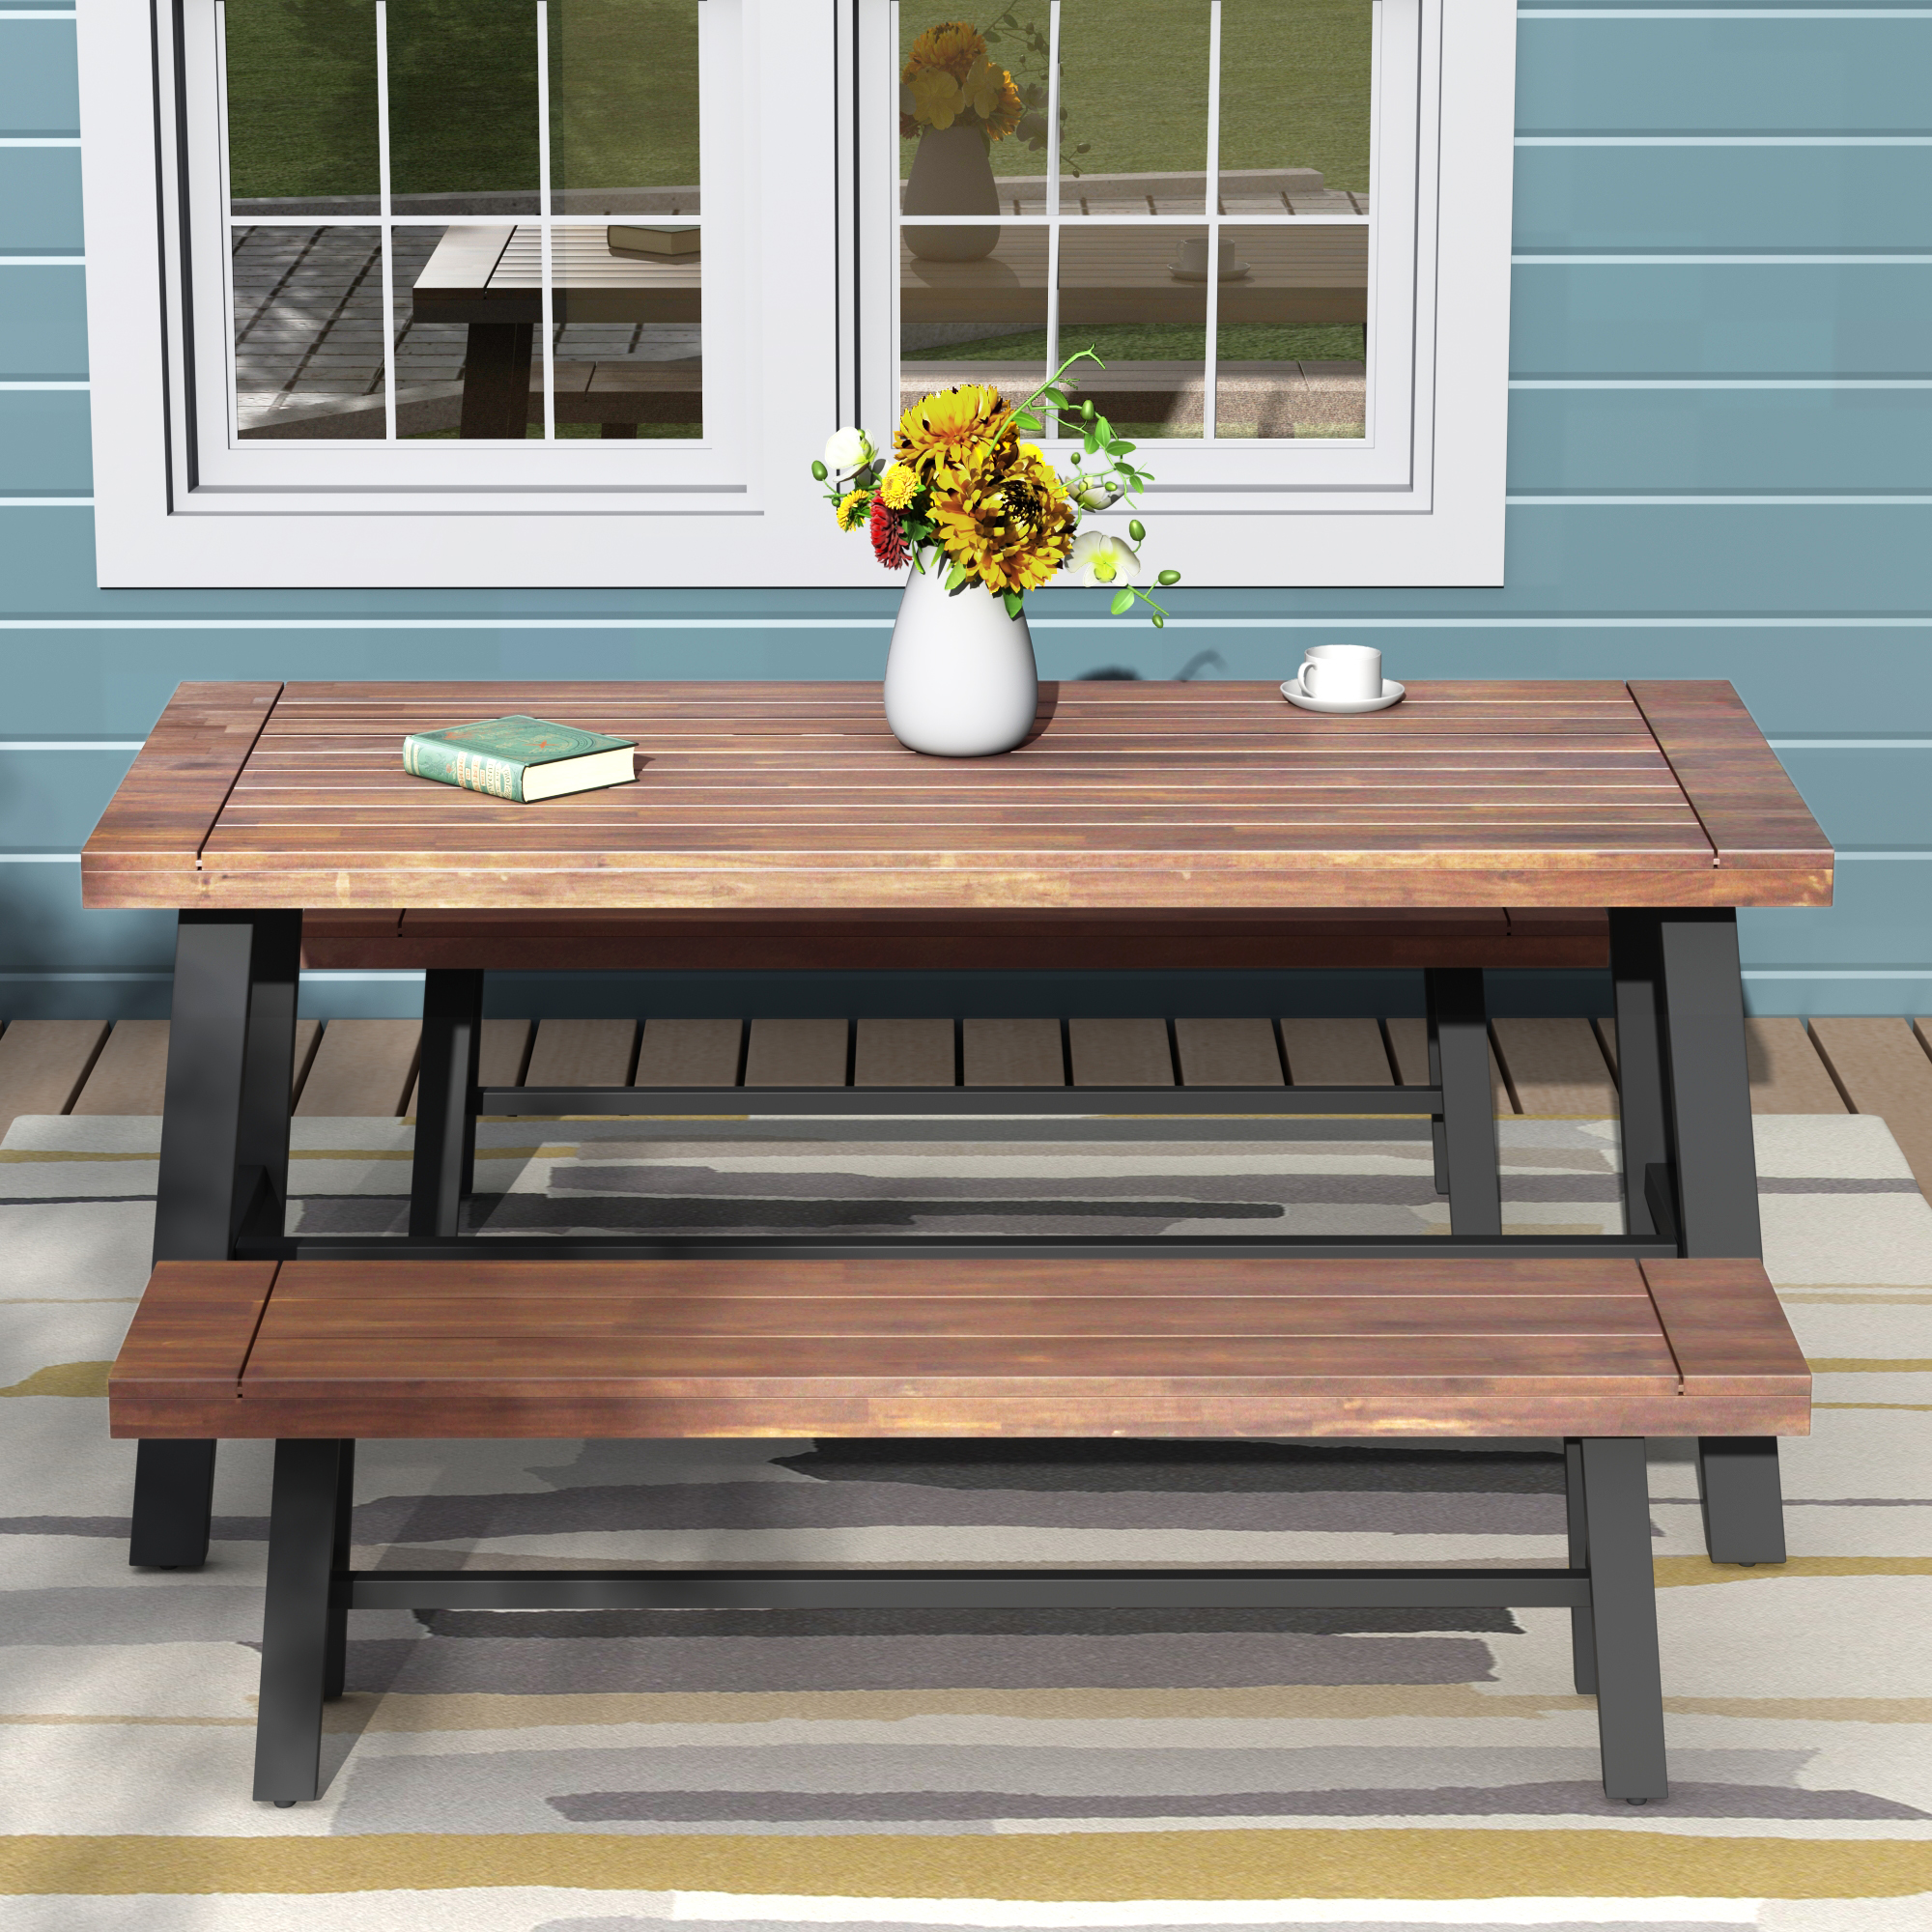 3 piece patio conversation set urhomepro rustic farmhouse outdoor table and bench set picnic table set with wooden finish metal frame outdoor